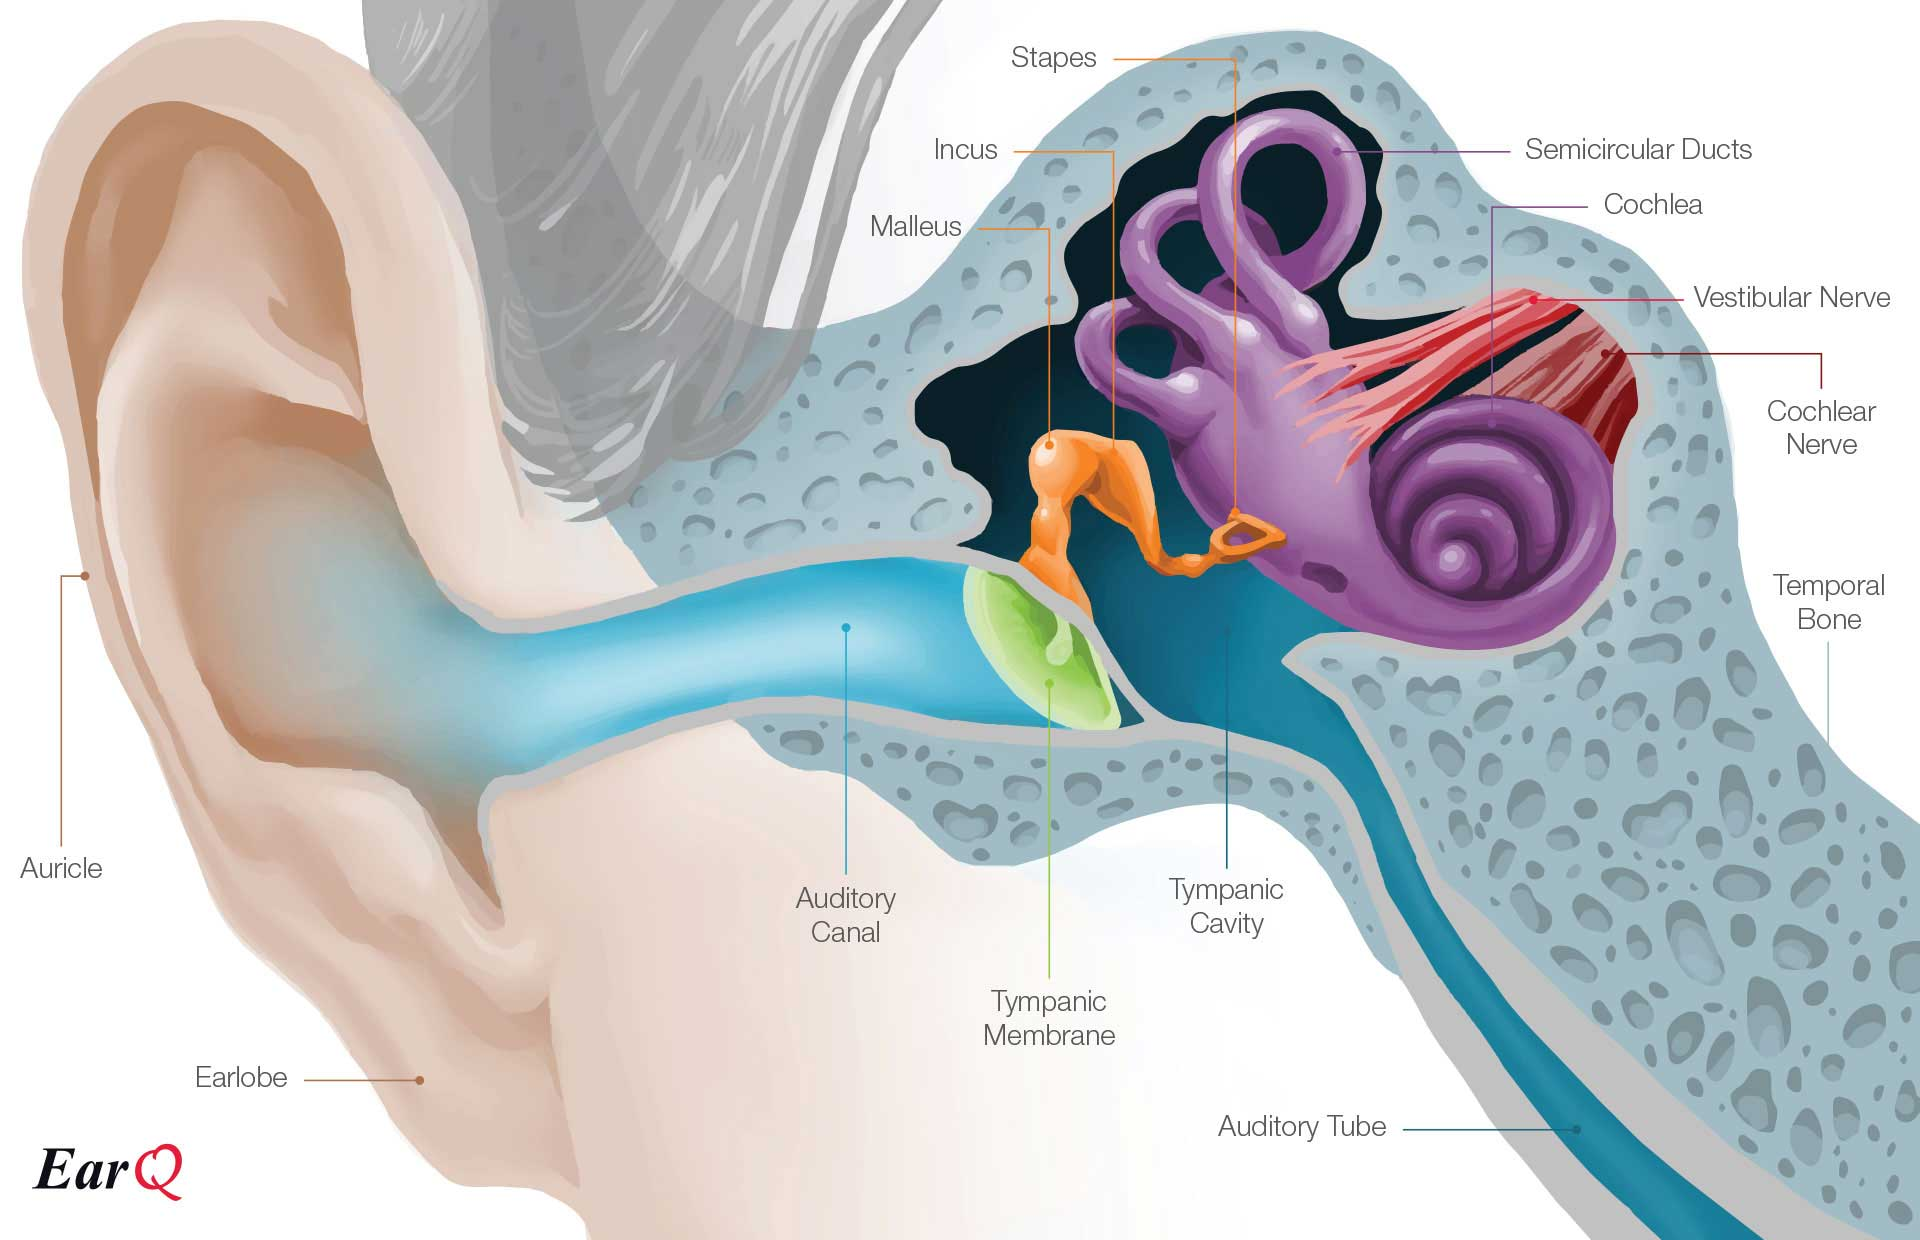 Anatomy of the Ear | Inner Ear | Middle Ear | Outer Ear